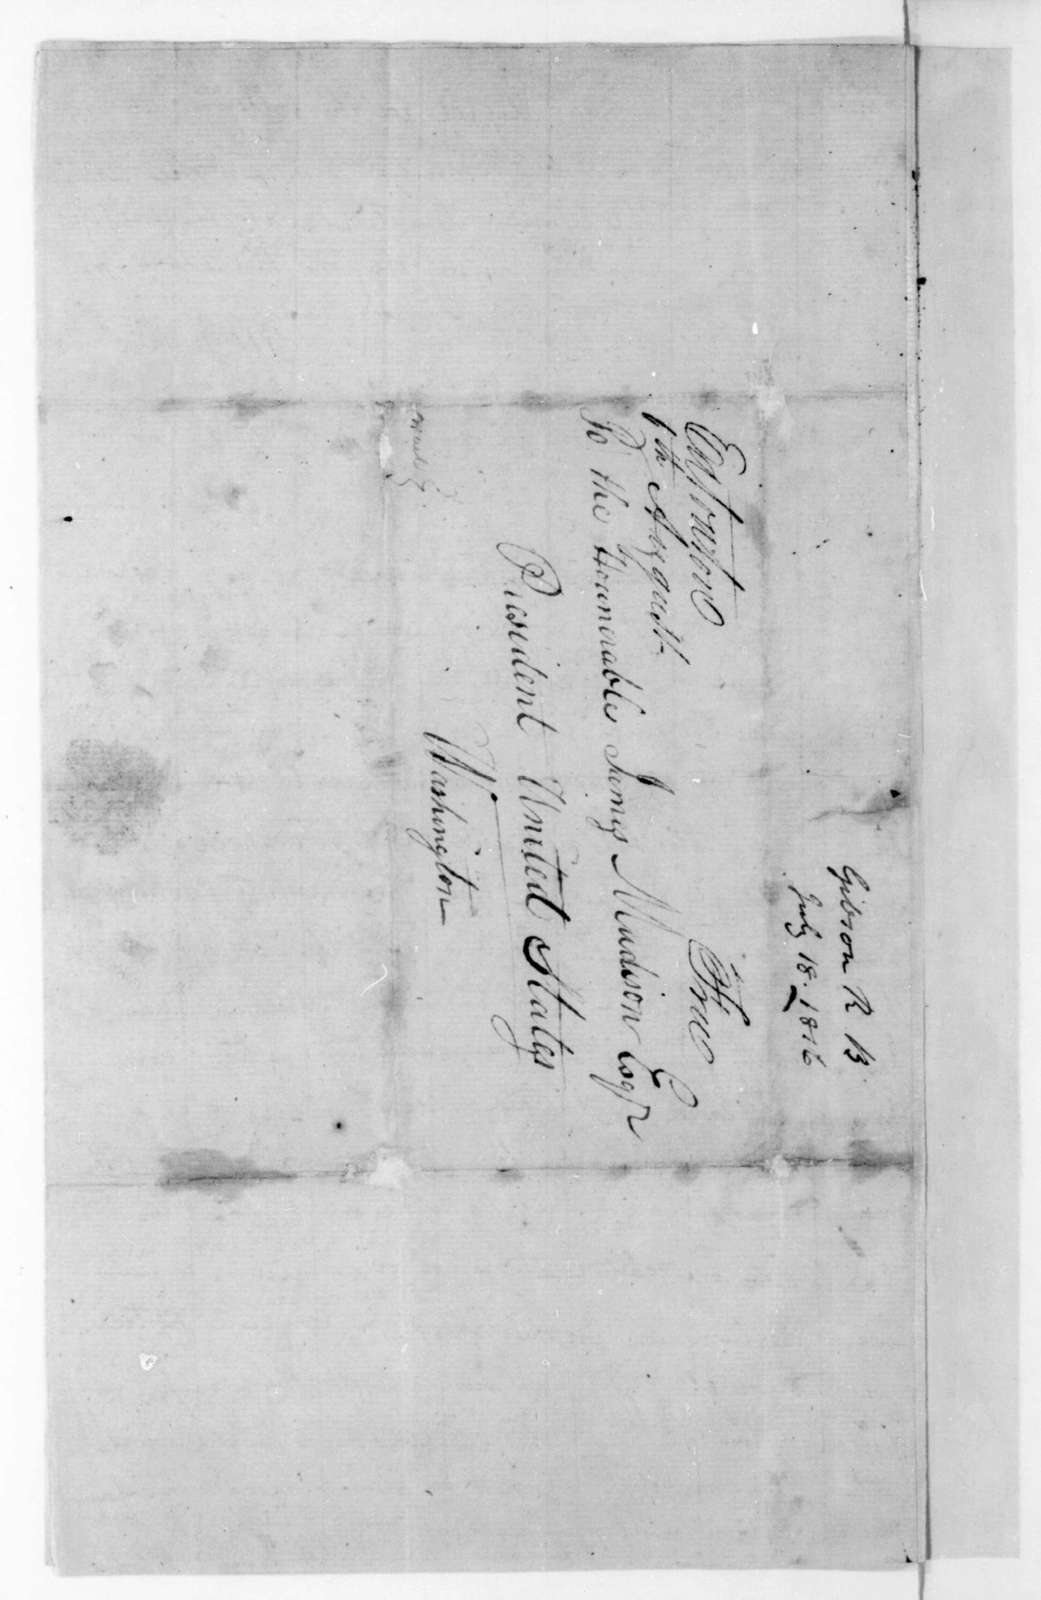 Robert B. Gibson to James Madison, July 18, 1816. With Warrants.